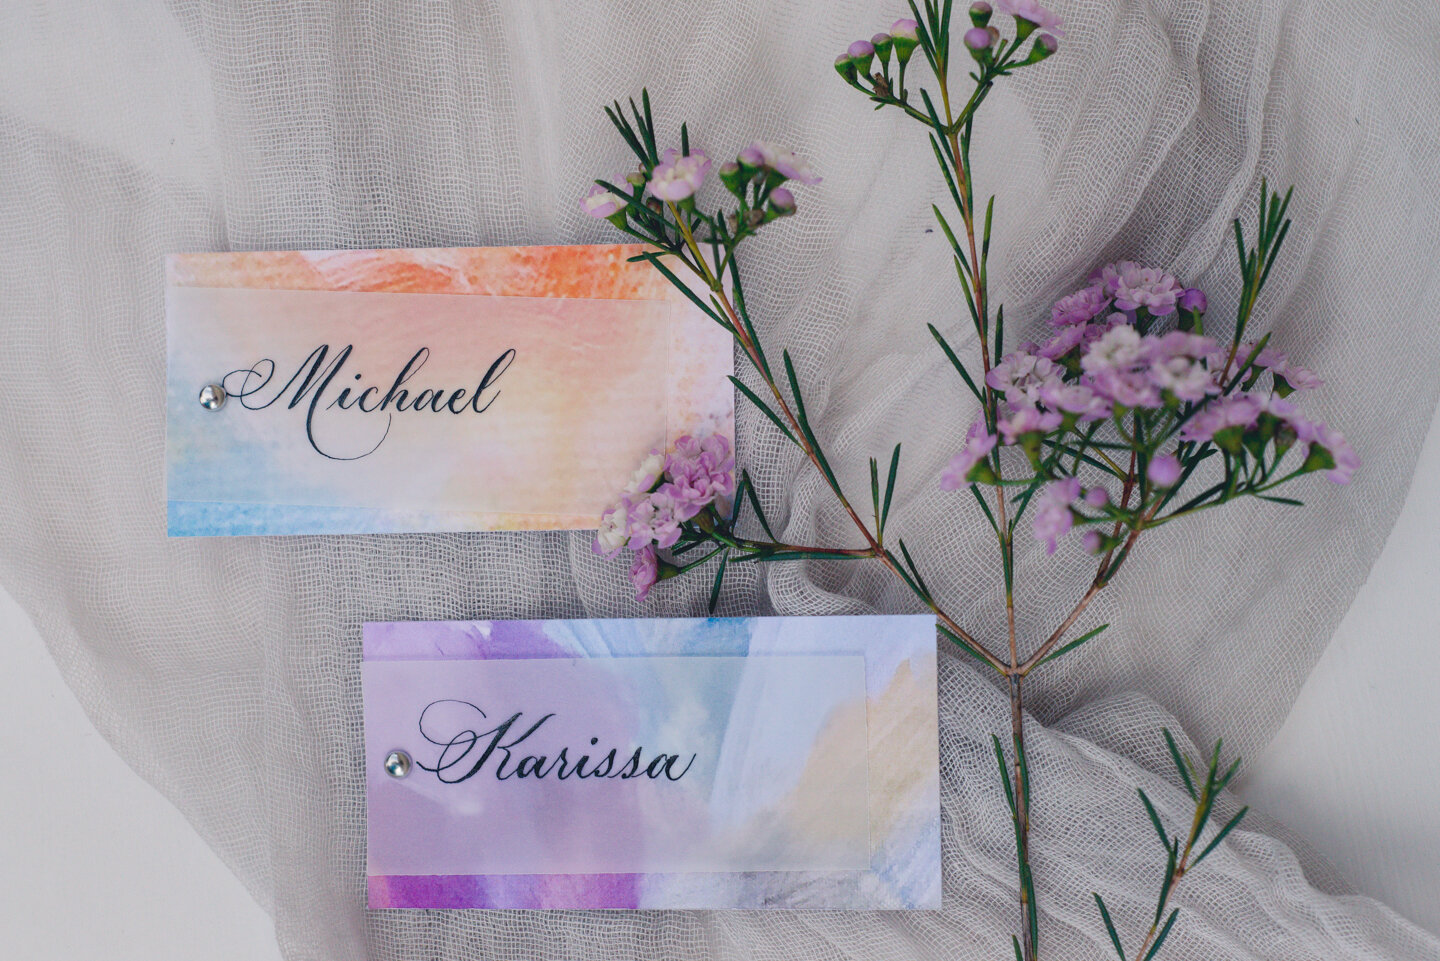 Watercolor painting with vellum overlay and Copperplate calligraphy (Caroline & Patricia Style).